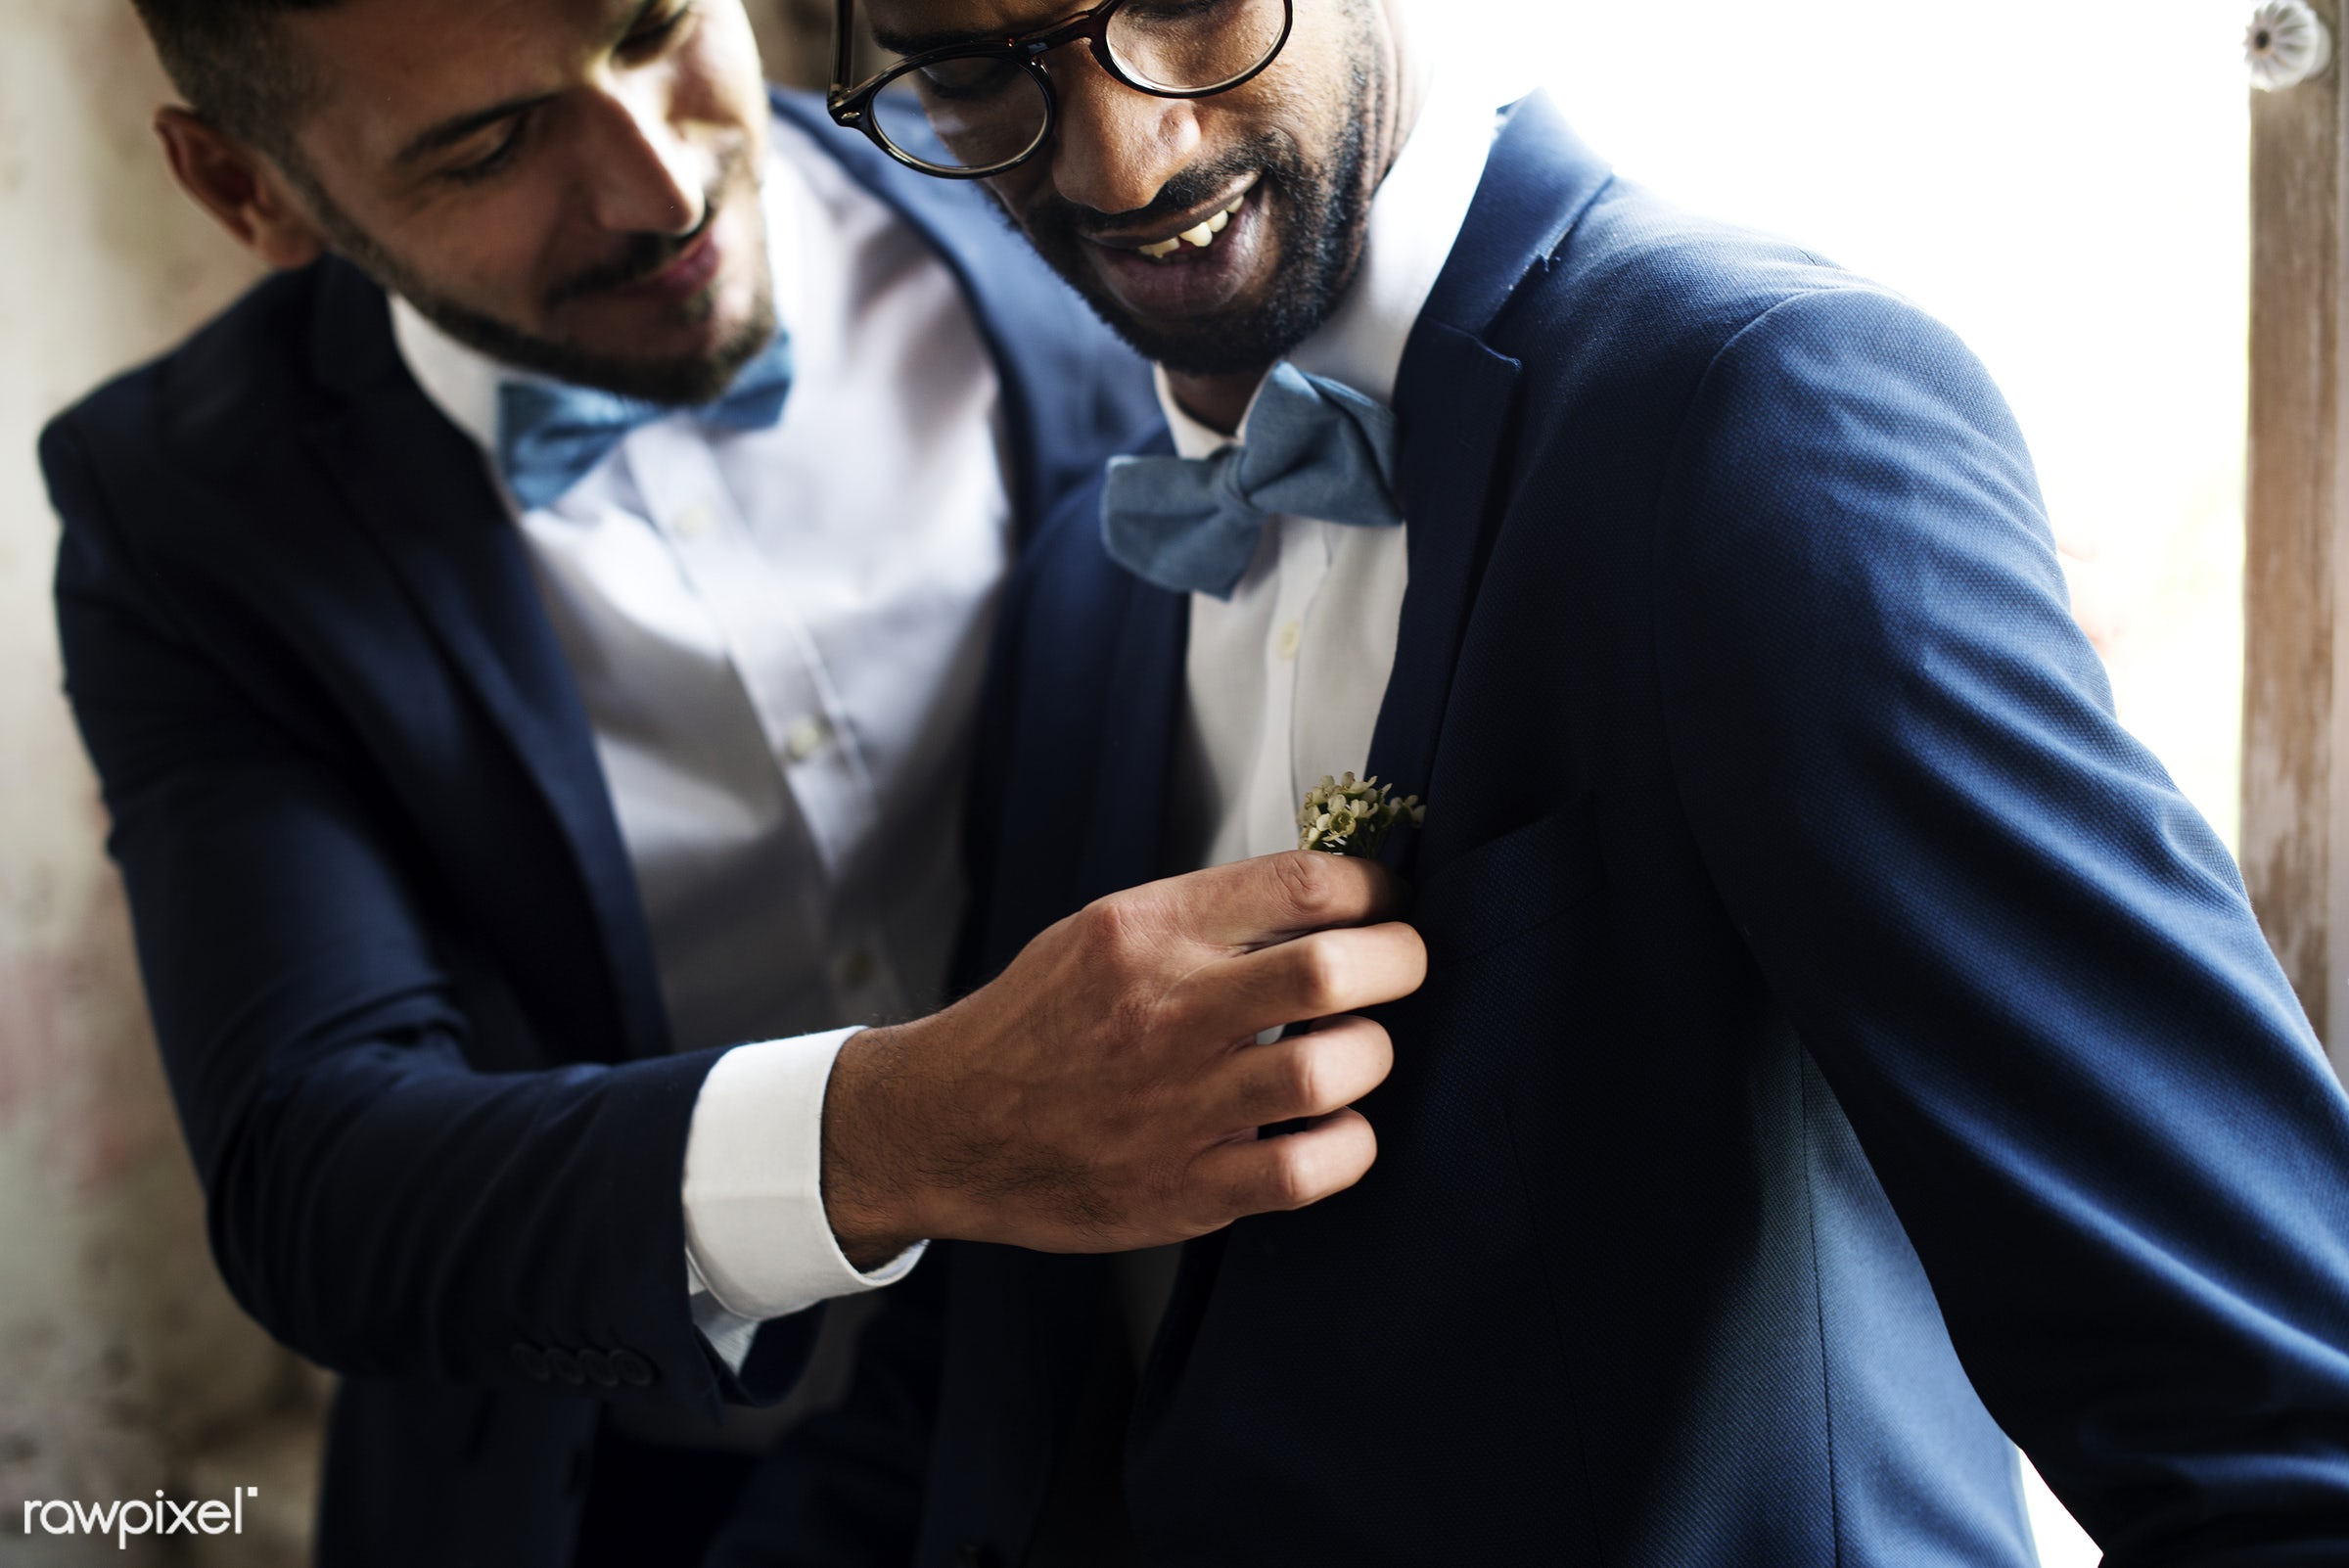 Gay couple sweet on wedding day - gay, black, celebration, cheerful, clothes, couple, diverse, equality, fixing, groom,...